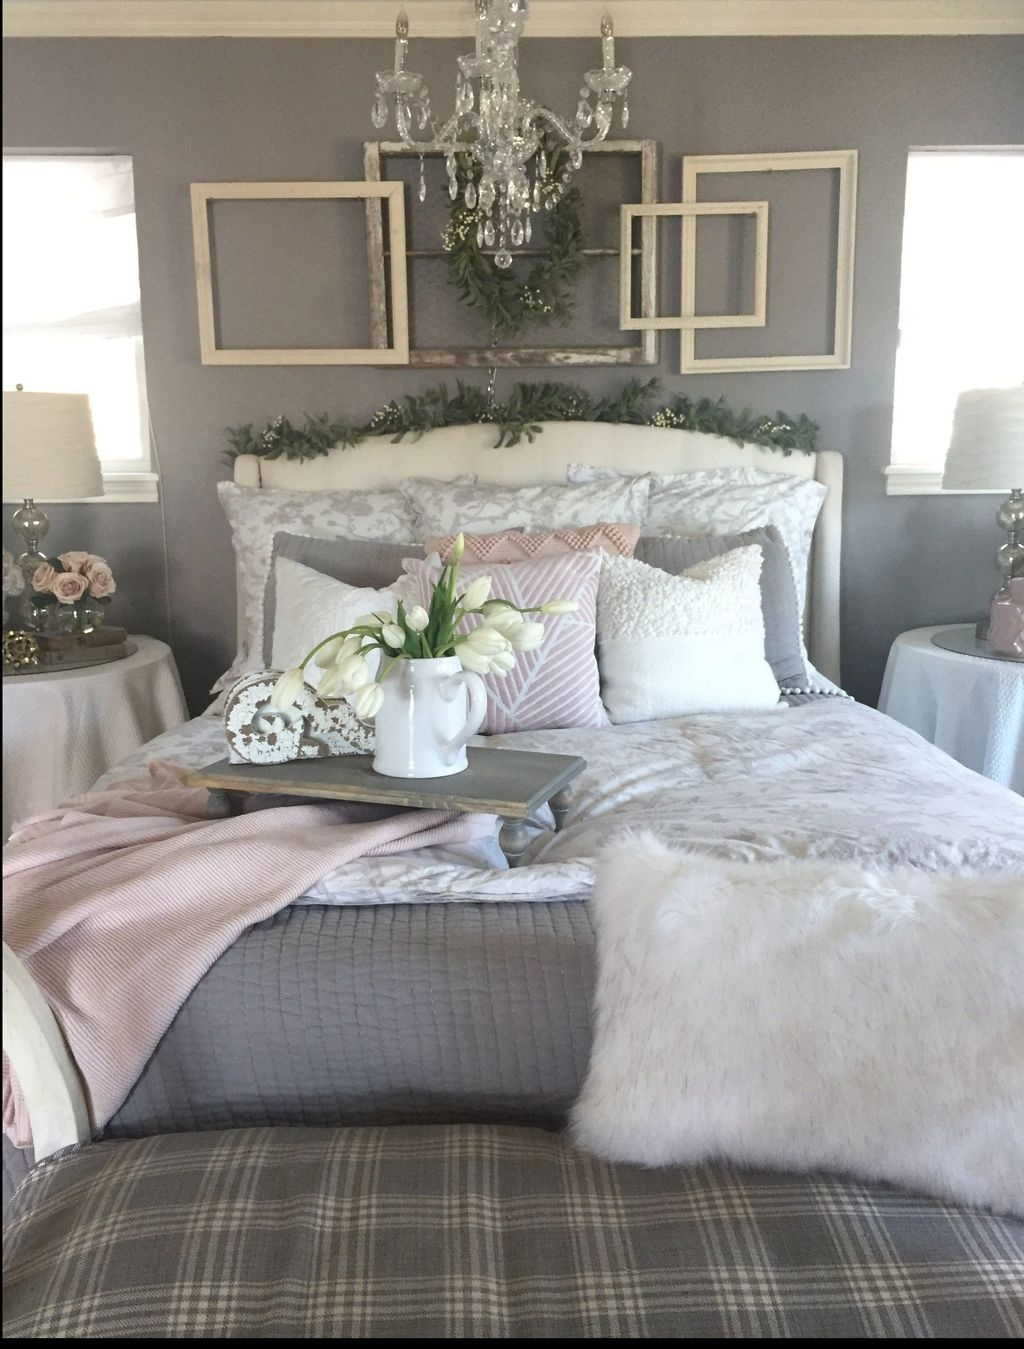 Inspiring Modern Farmhouse Bedroom Decor Ideas 51